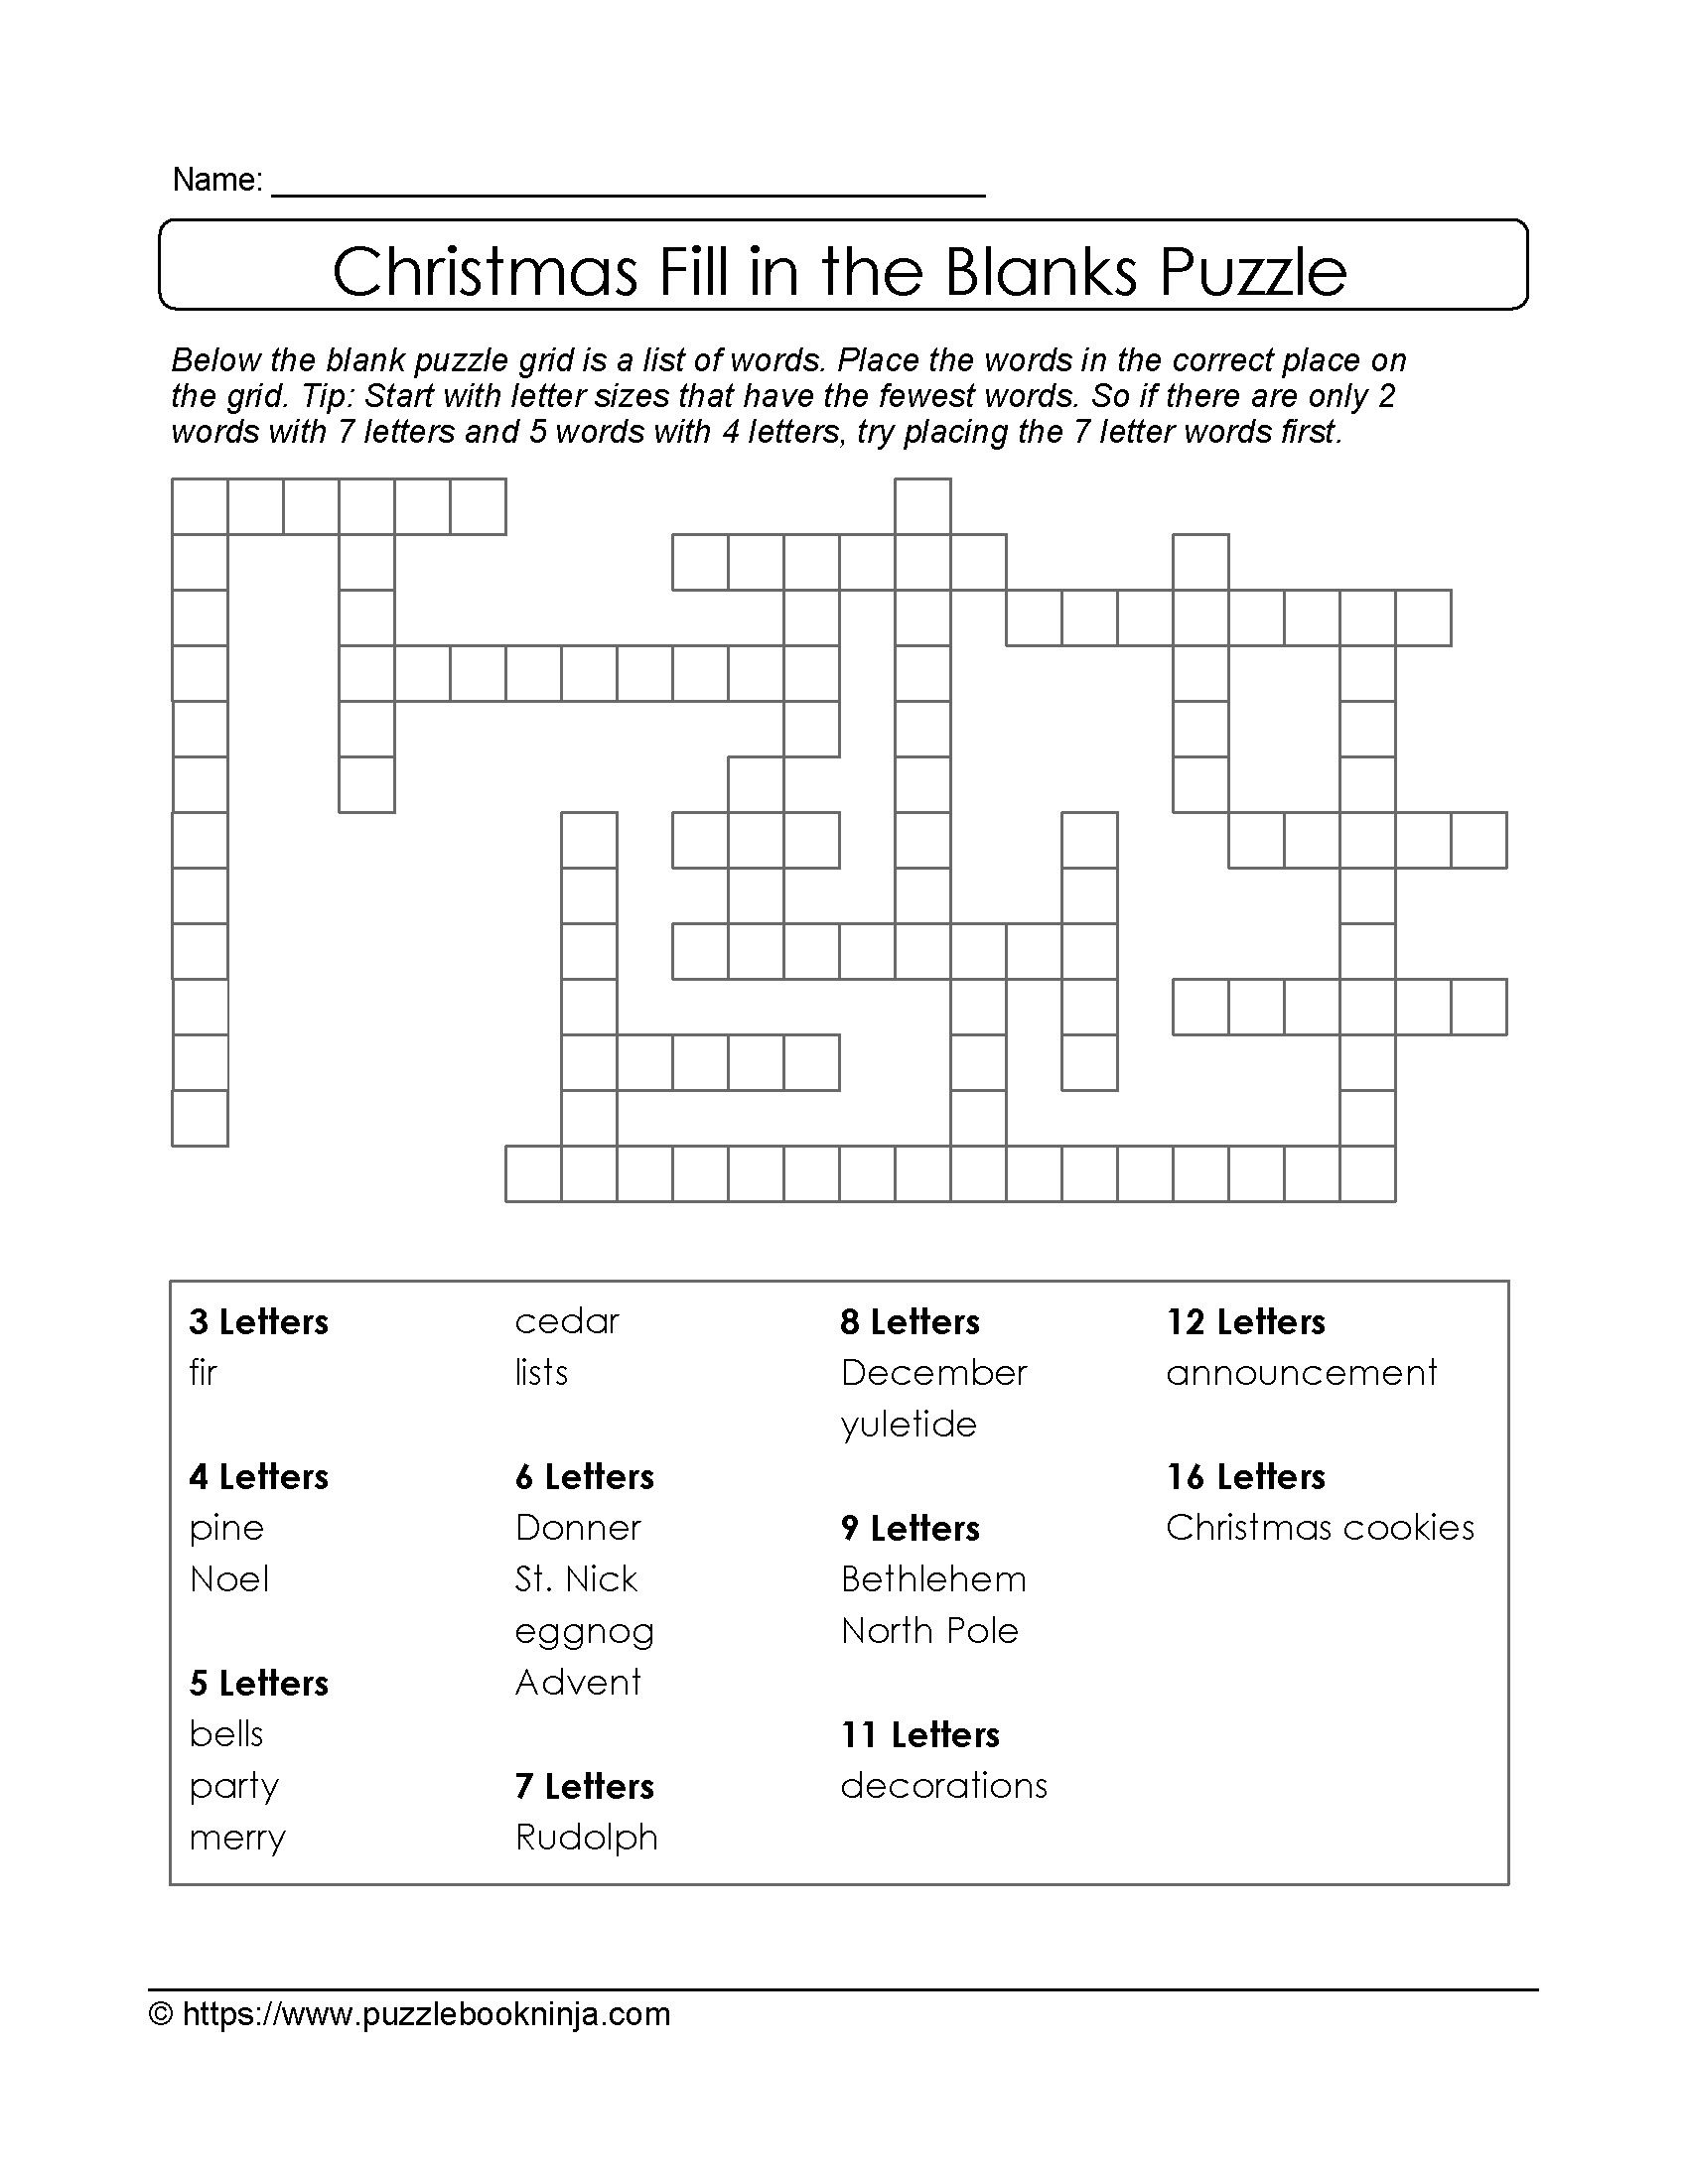 Christmas Printable Puzzle. Free Fill In The Blanks. | Christmas - Blank Crossword Puzzle Printable